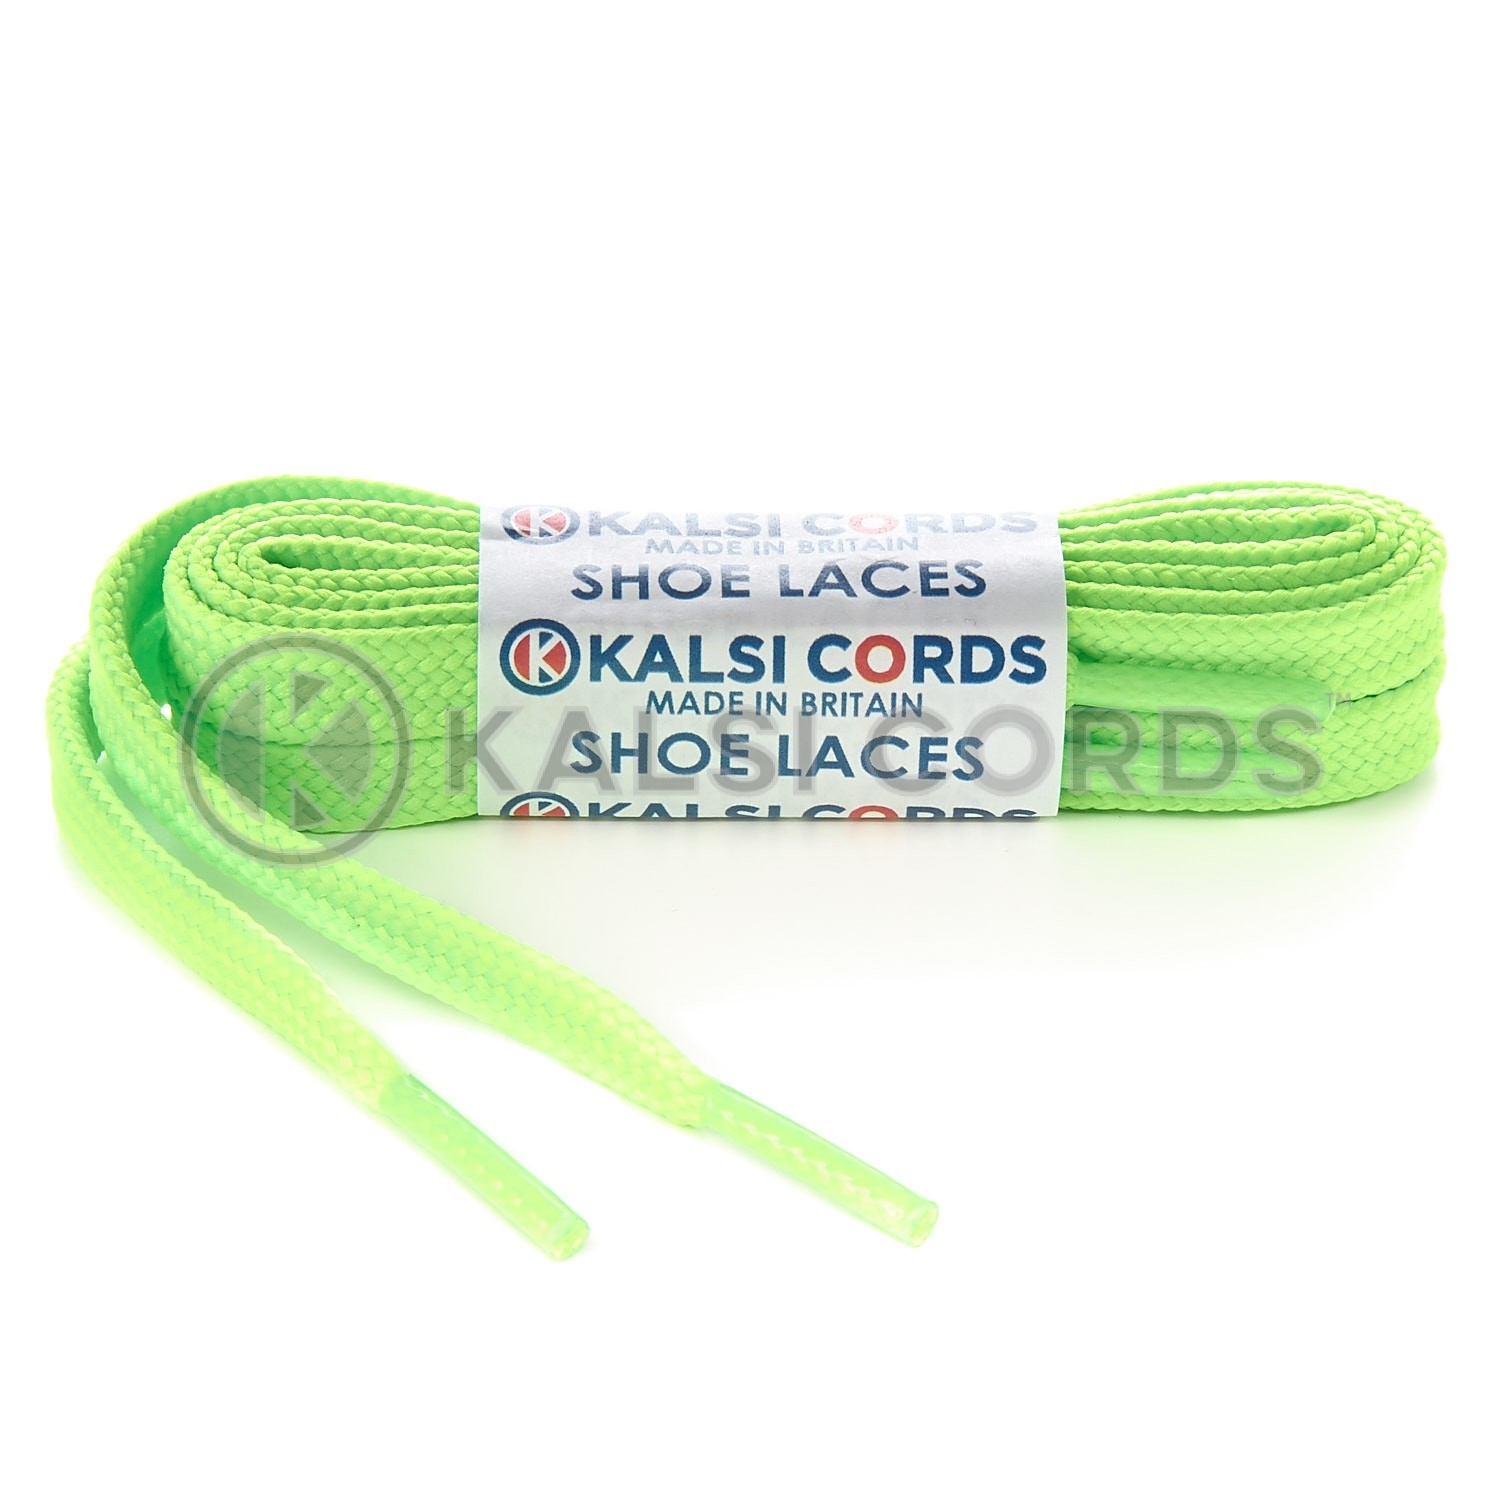 R1176 9mm Flat Shoe Laces Tubular Fluorescent Neon Lime Green PG051 Sports Trainers Boots Footwear Hoodies Joggers Drawstring Drawcord Braid